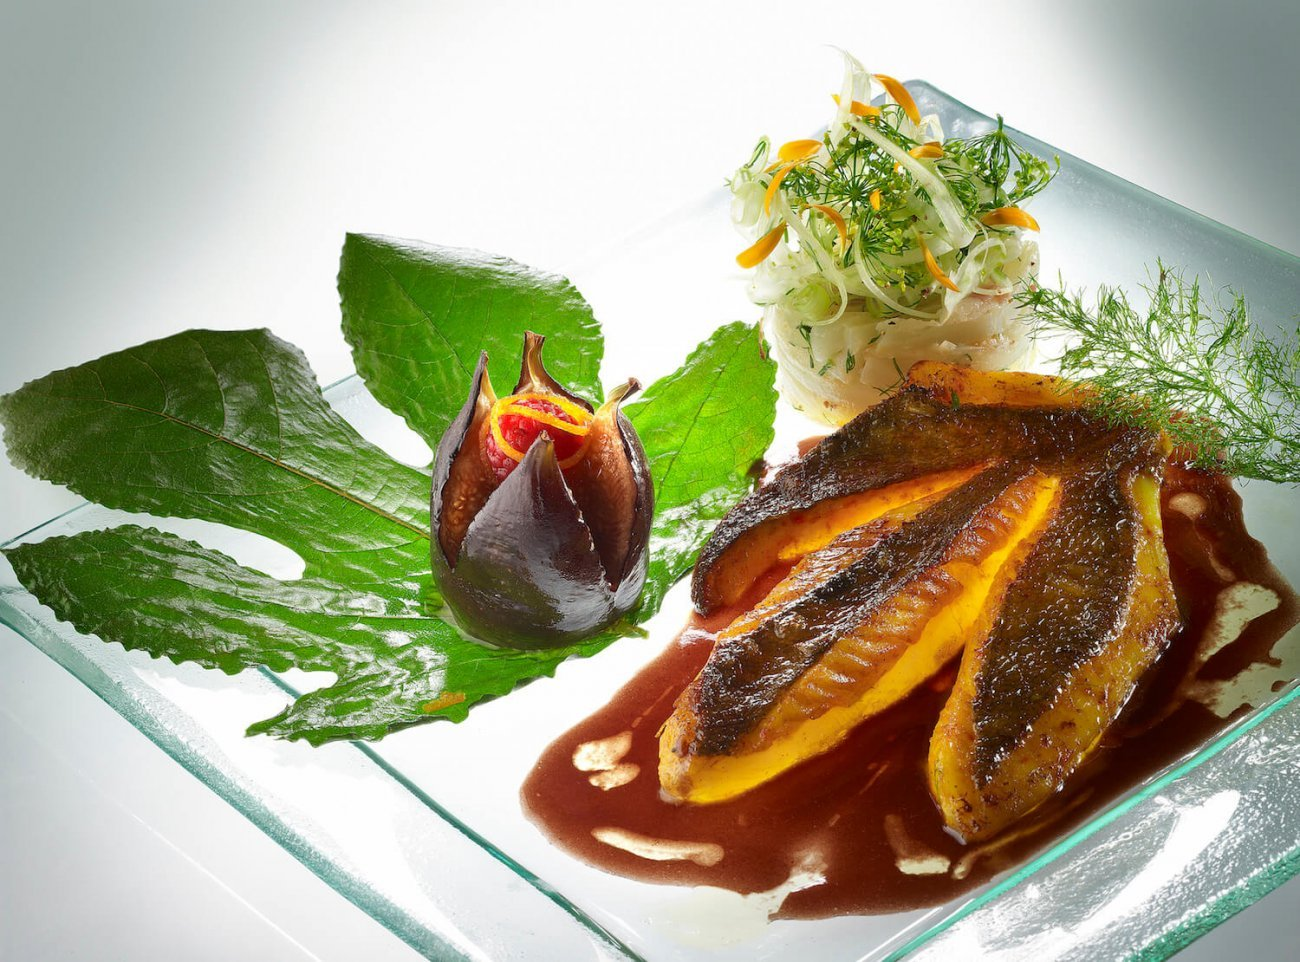 SAFFRON FILLET OF JOHN DORY ROASTED WITH FRESH FIGS, RED BANDOL WINE SAUCE AND ROSEMARY